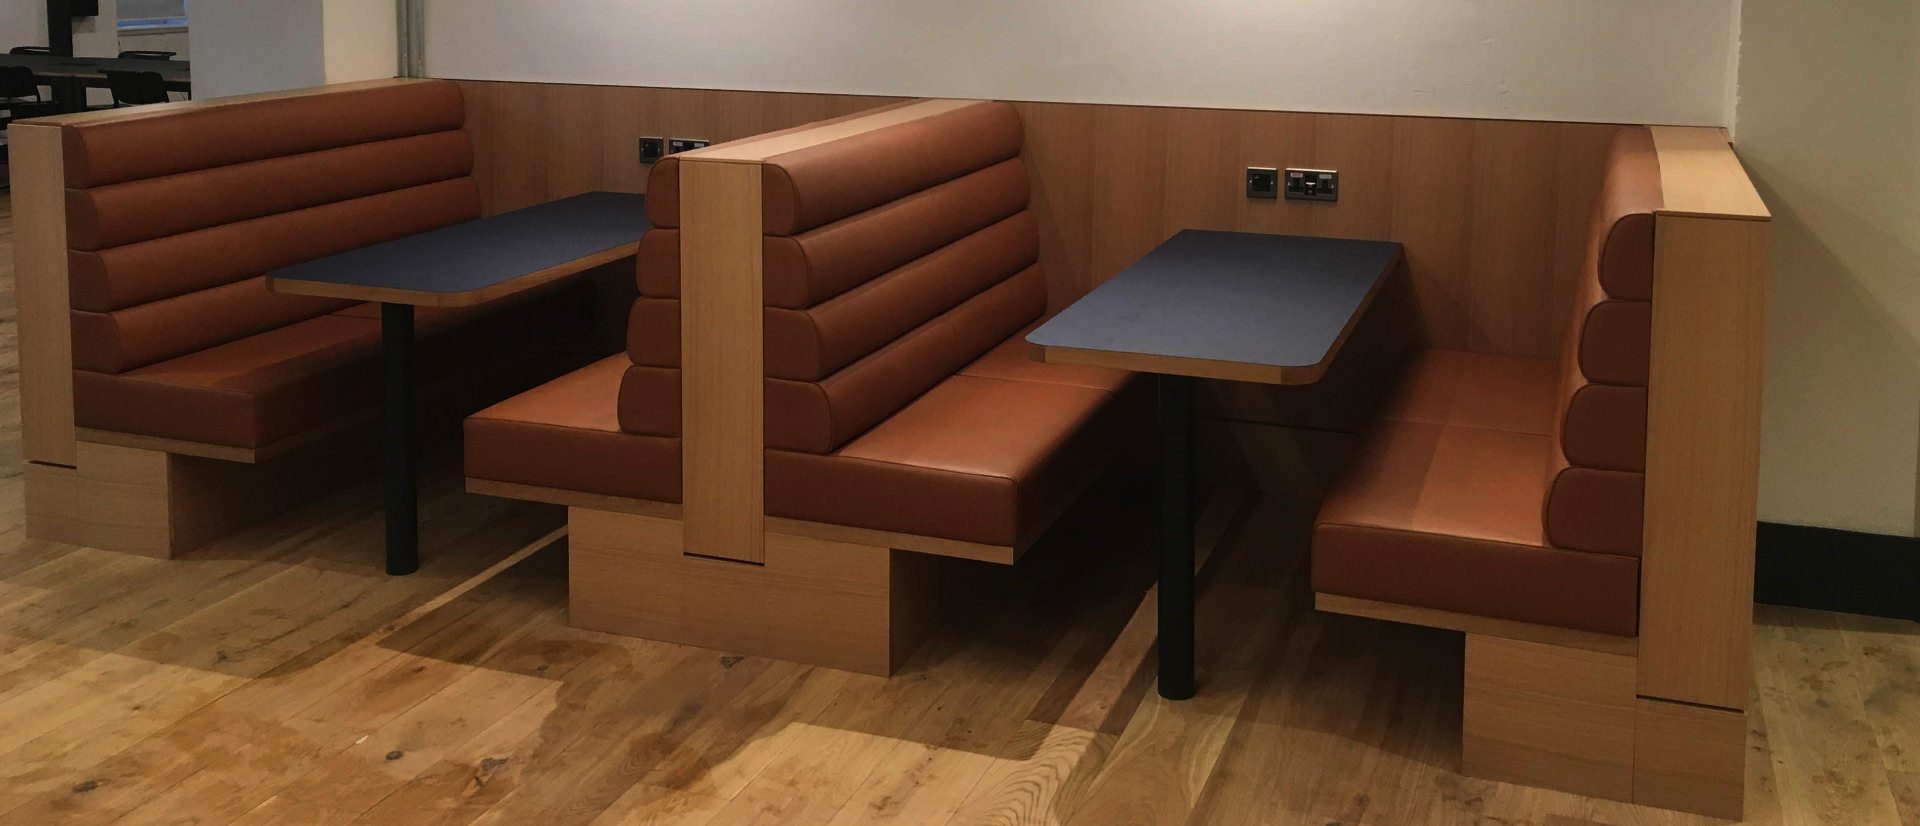 Brown vinyl booth seating created by Margan Limited